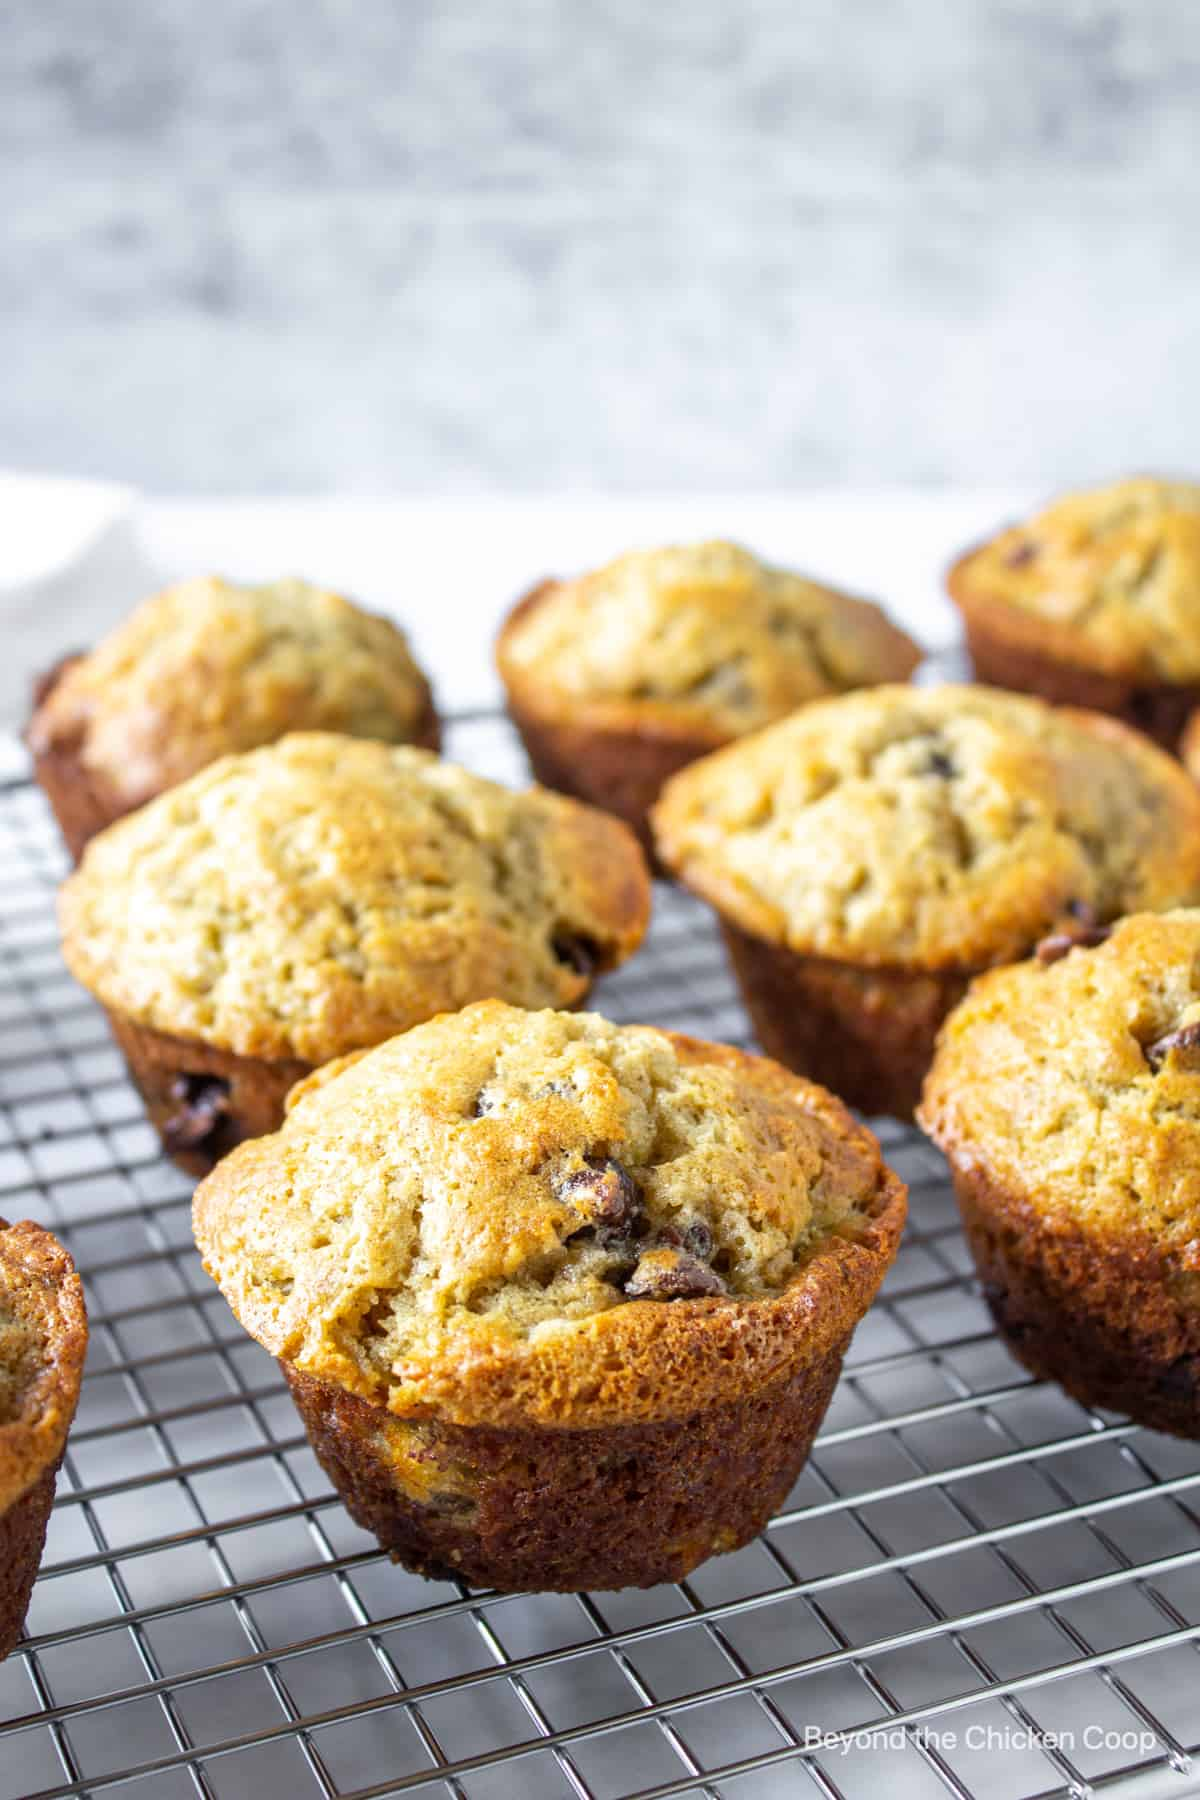 Muffins lined up on a baking rack.